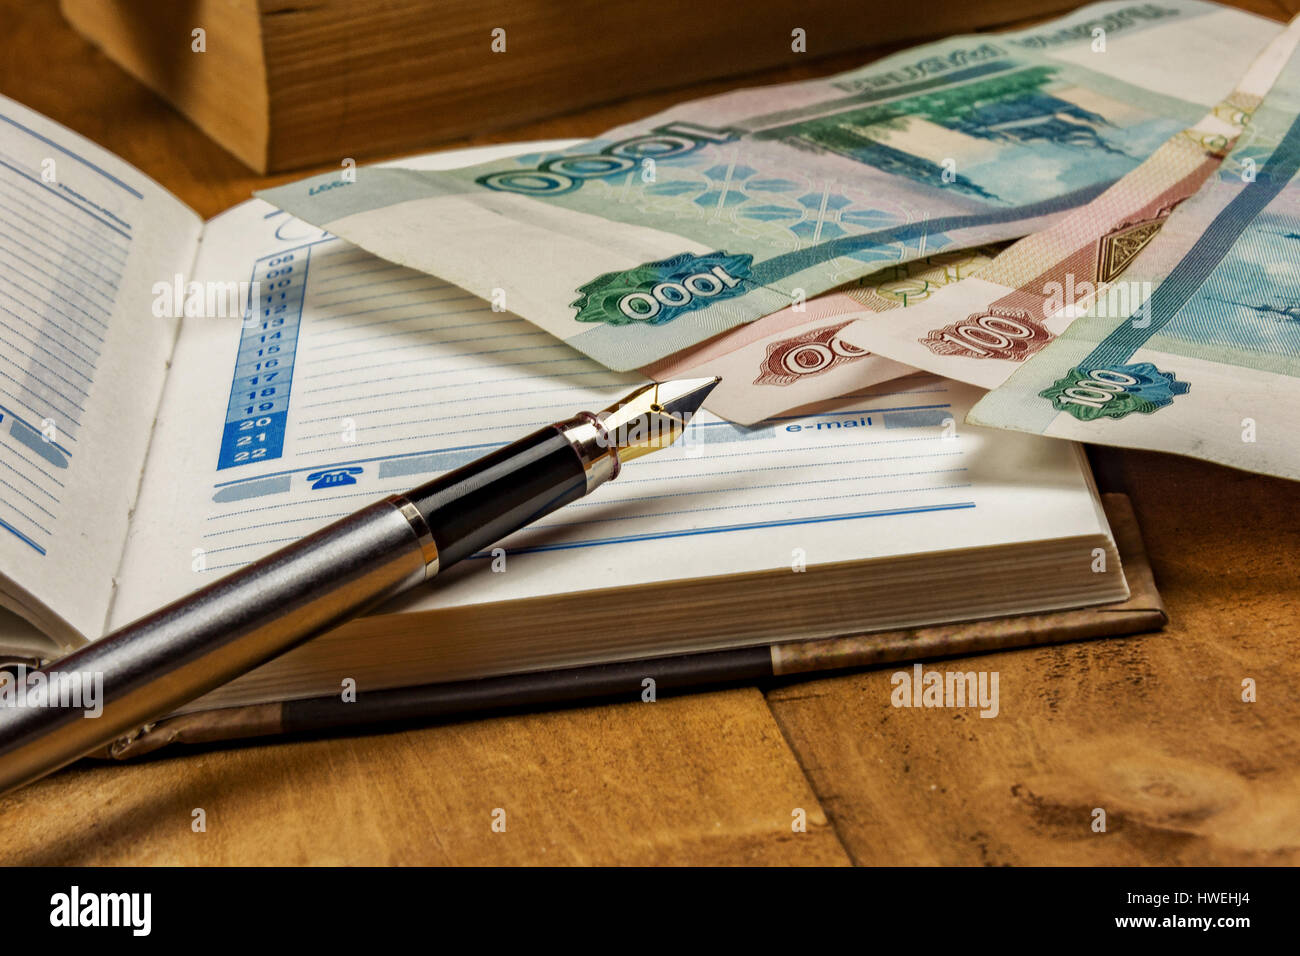 On the wooden surface is an open diary, a few bills and a fountain pen - Stock Image